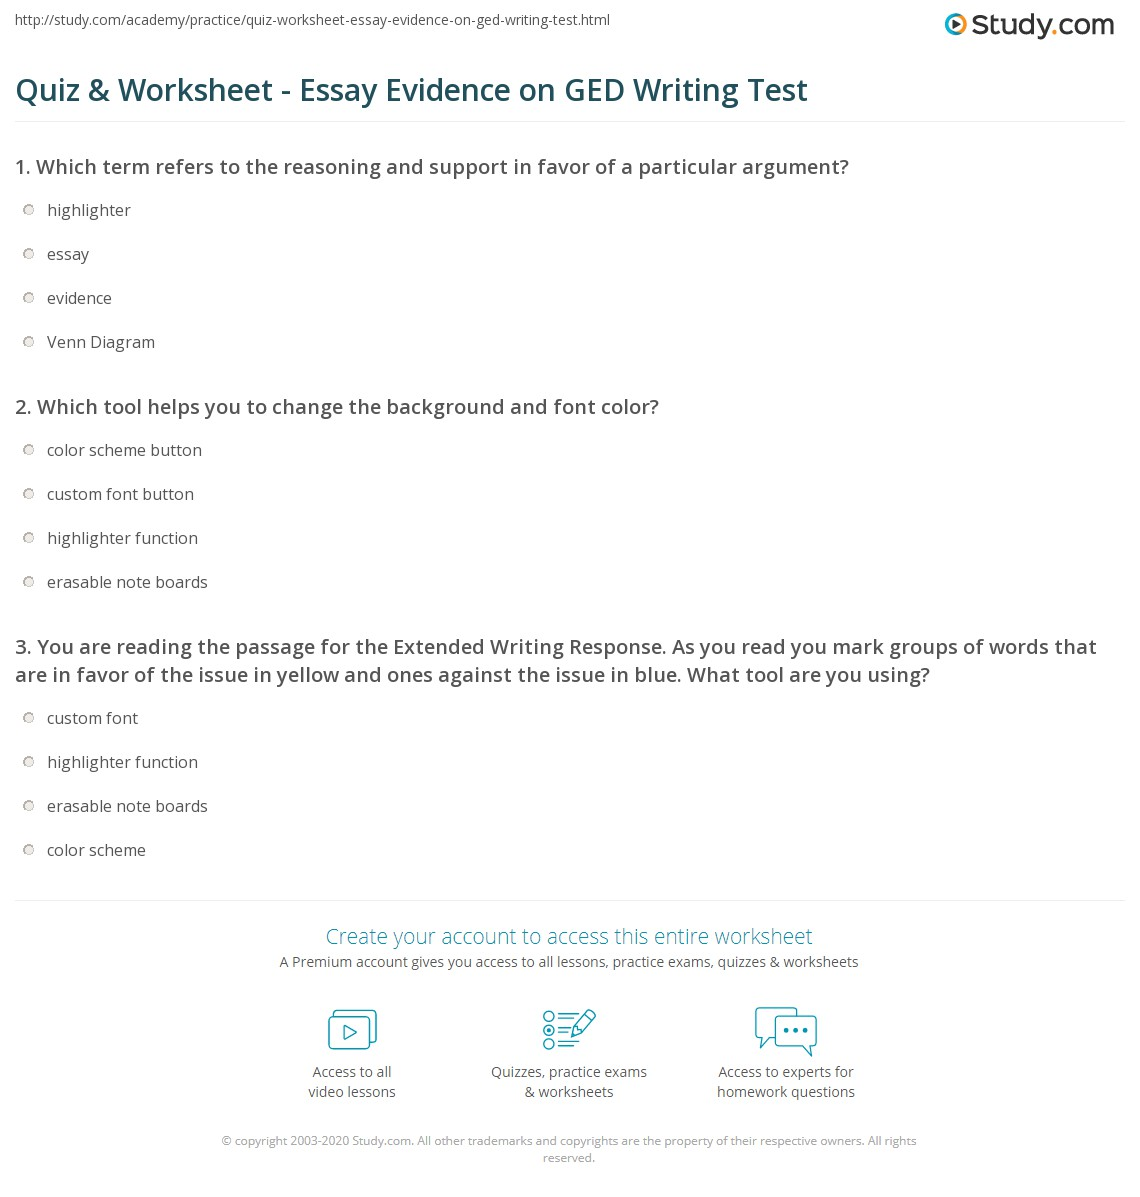 quiz worksheet essay evidence on ged writing test. Black Bedroom Furniture Sets. Home Design Ideas